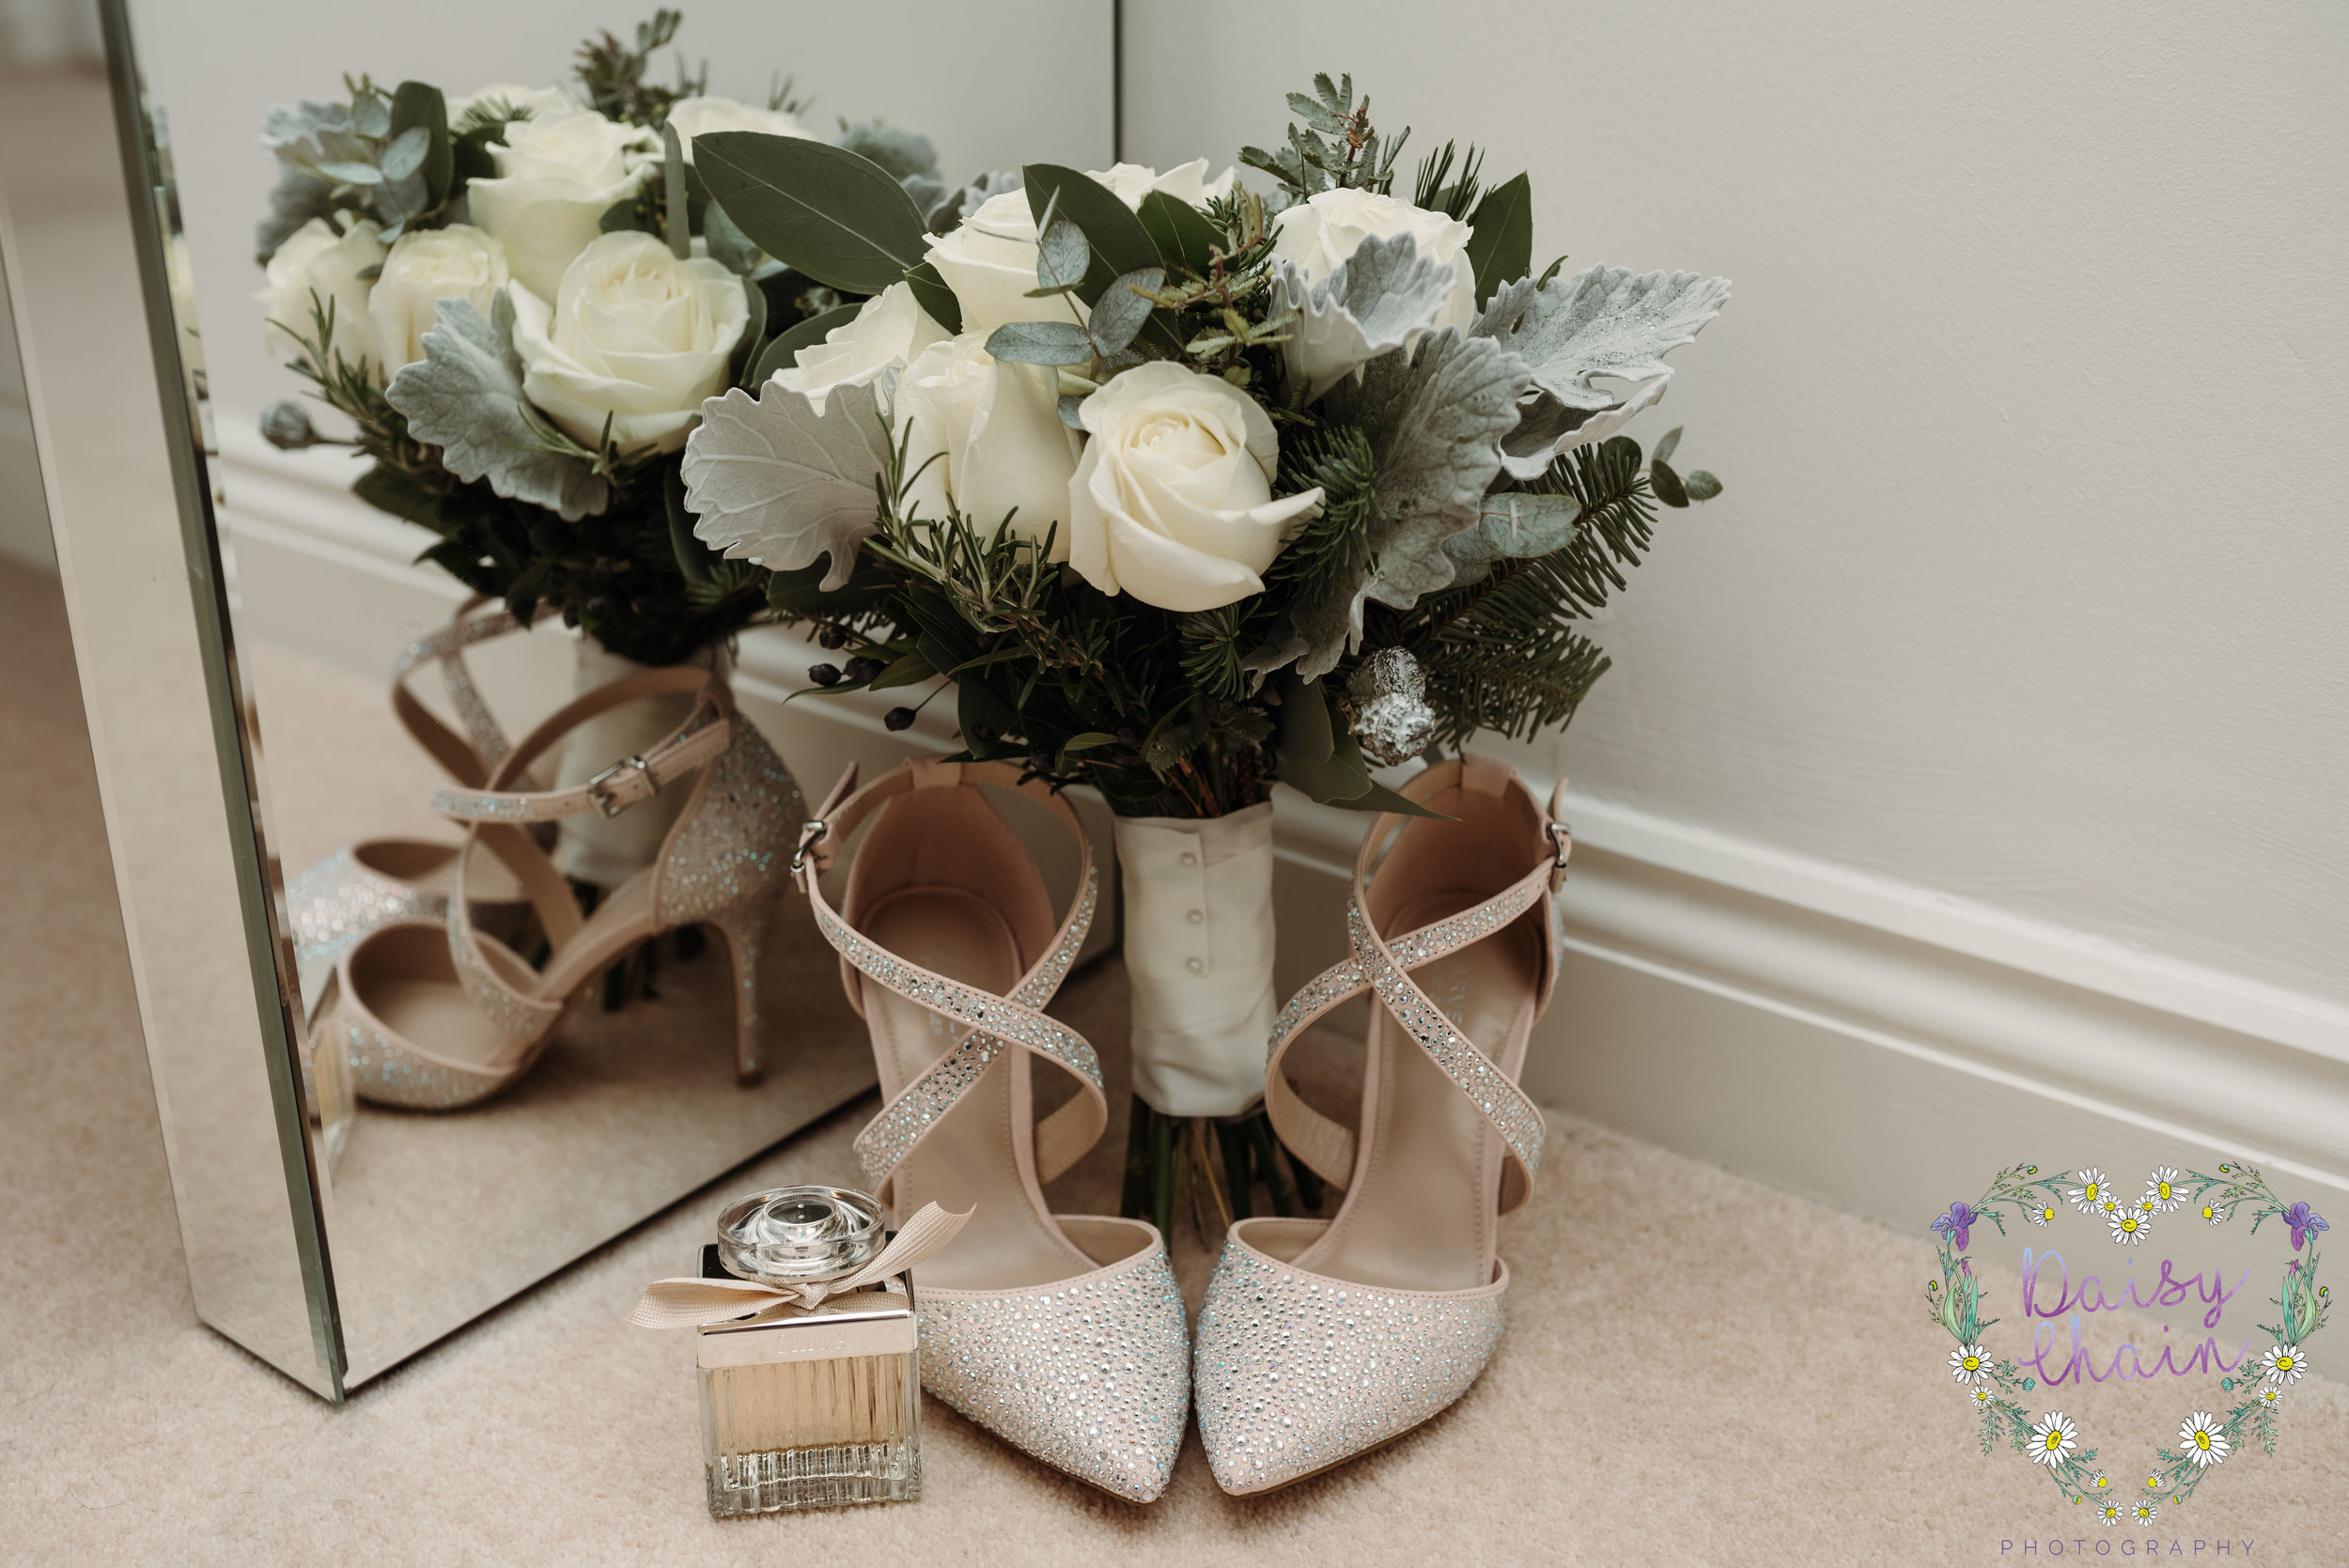 Gorgeous wedding bouquet and wedding shoes